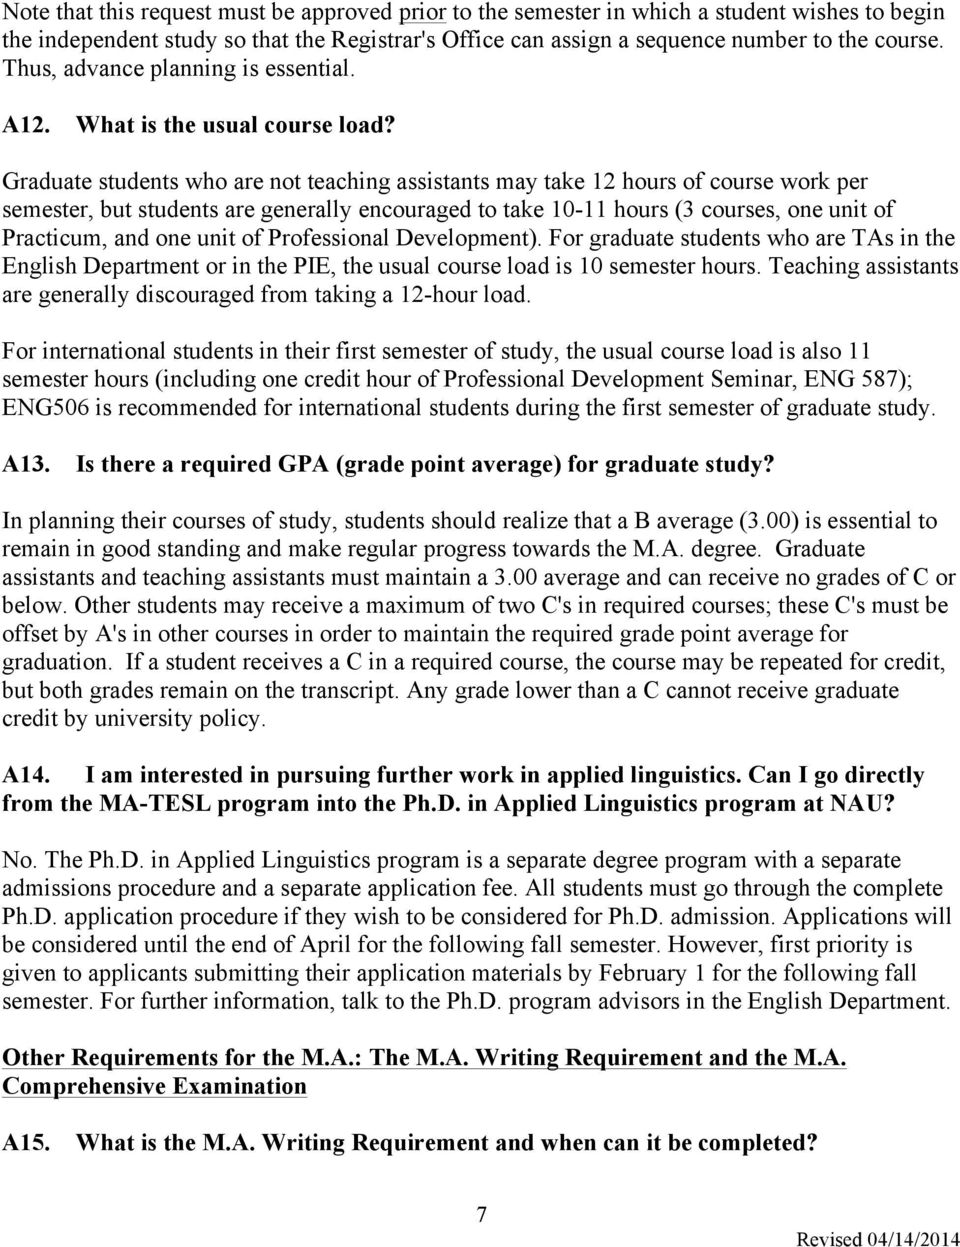 Graduate students who are not teaching assistants may take 12 hours of course work per semester, but students are generally encouraged to take 10-11 hours (3 courses, one unit of Practicum, and one